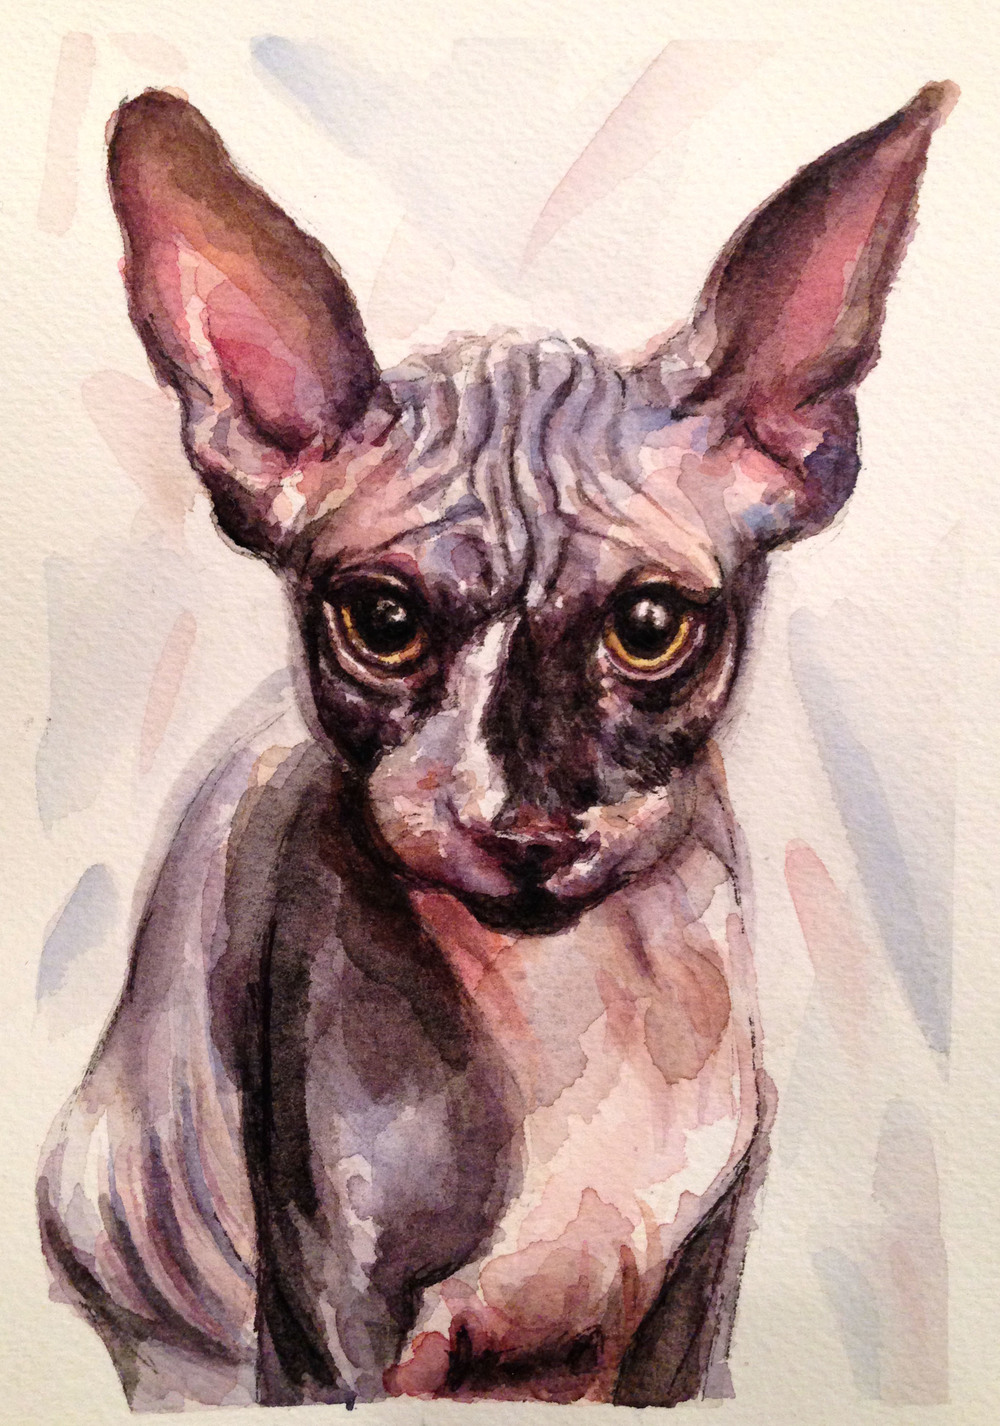 Kyle the hairless cat